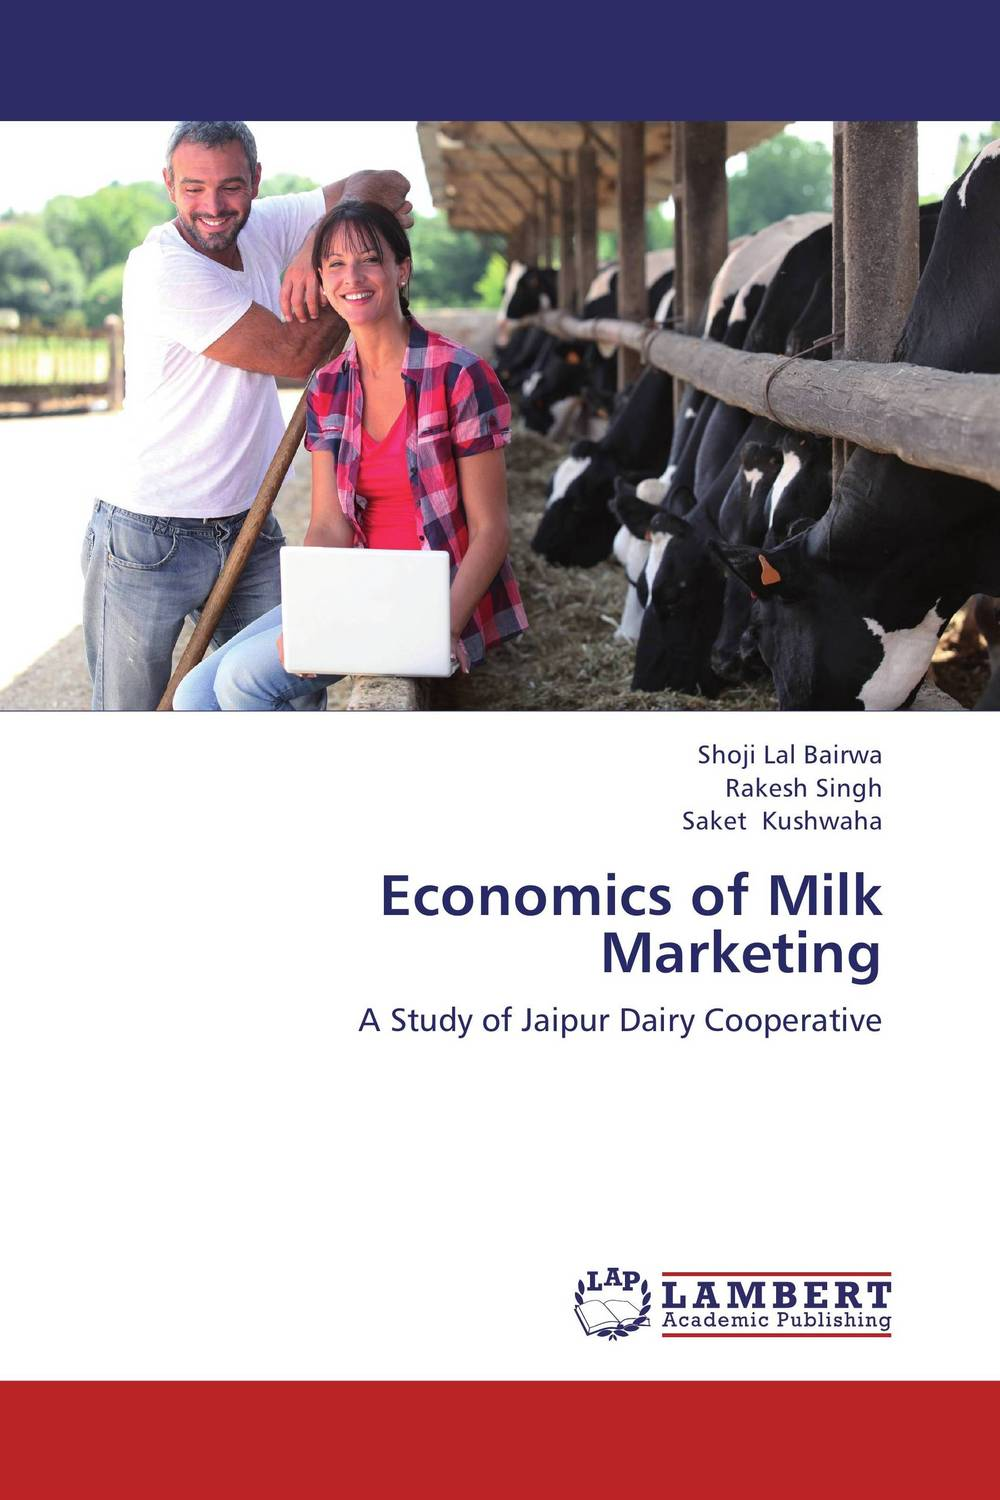 Economics of Milk Marketing shoji lal bairwa rakesh singh and saket kushwaha economics of milk marketing